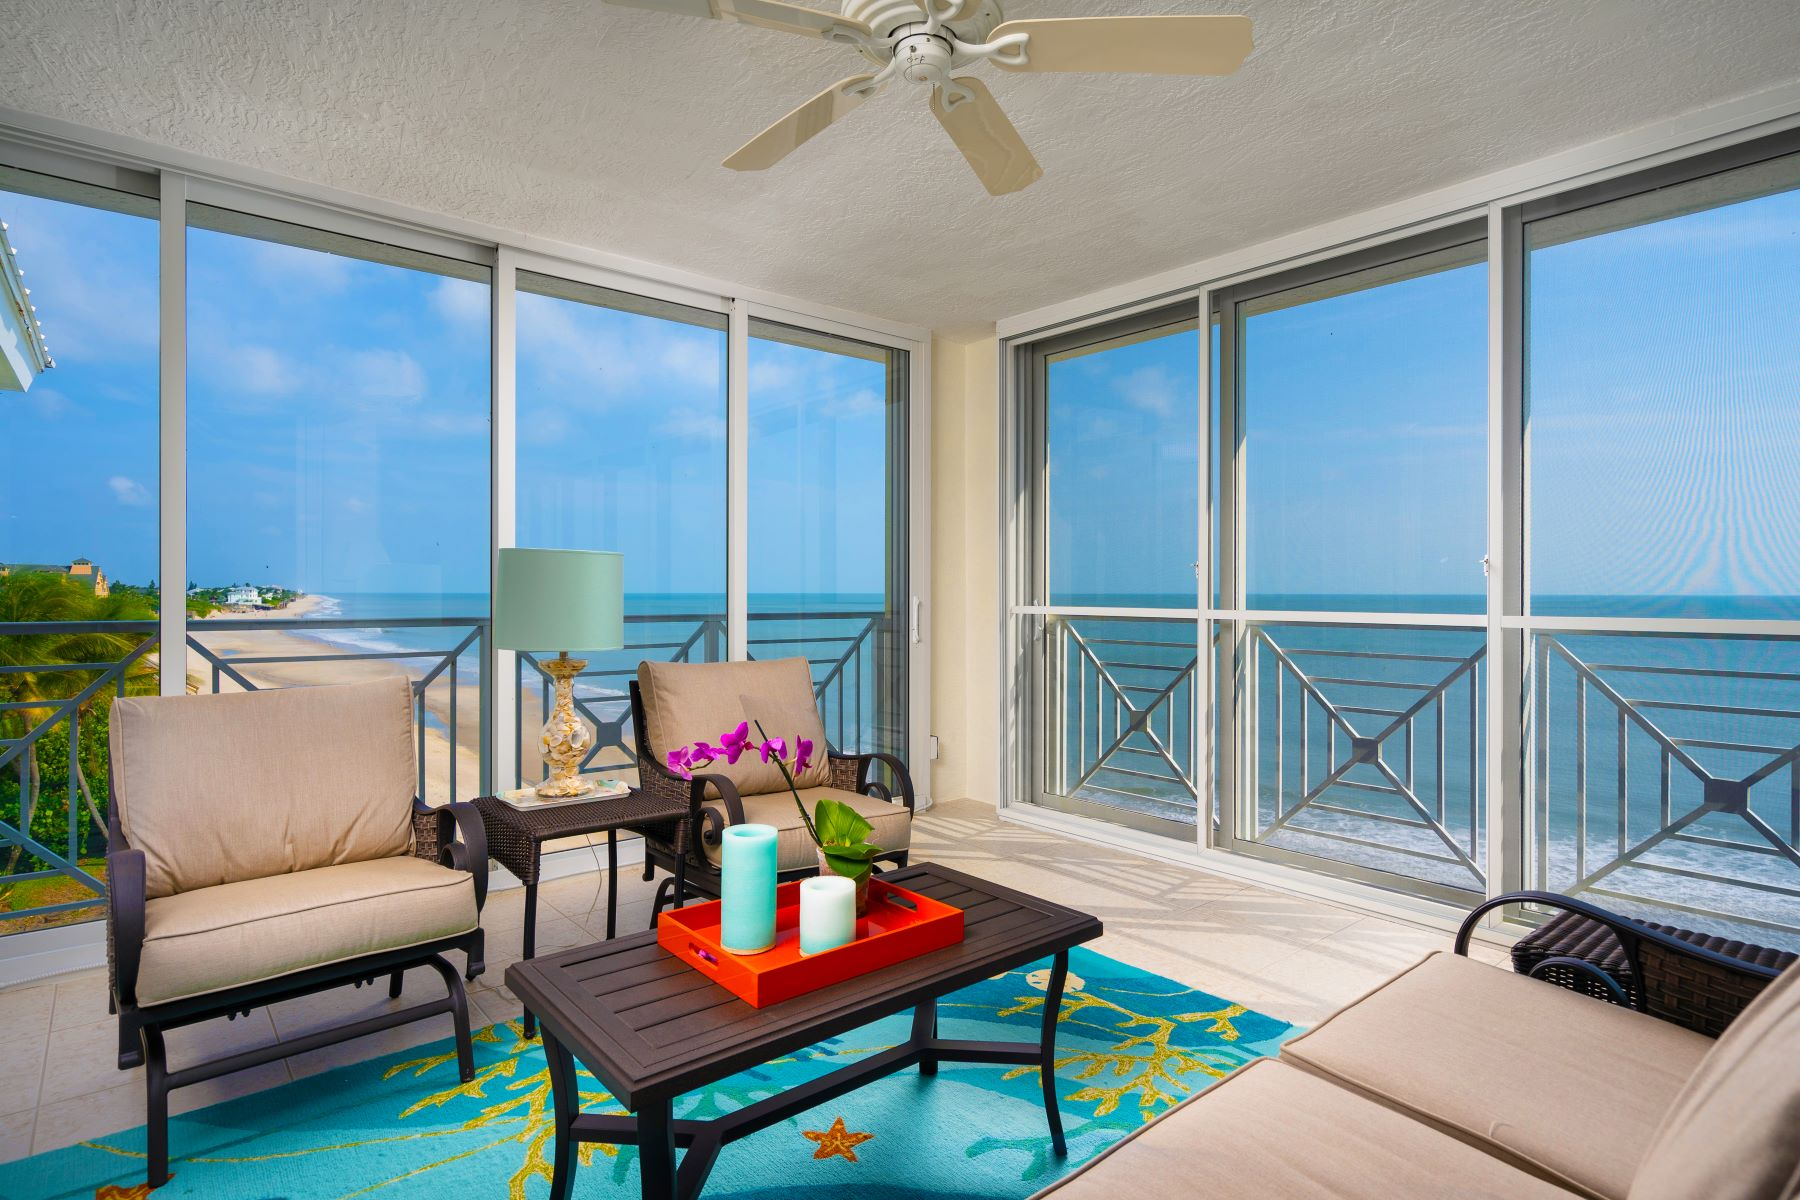 Property for Sale at Stunning Oceanfront Four Bedroom Top Floor Condo 8890 Sea Oaks Way 105 Vero Beach, Florida 32963 United States